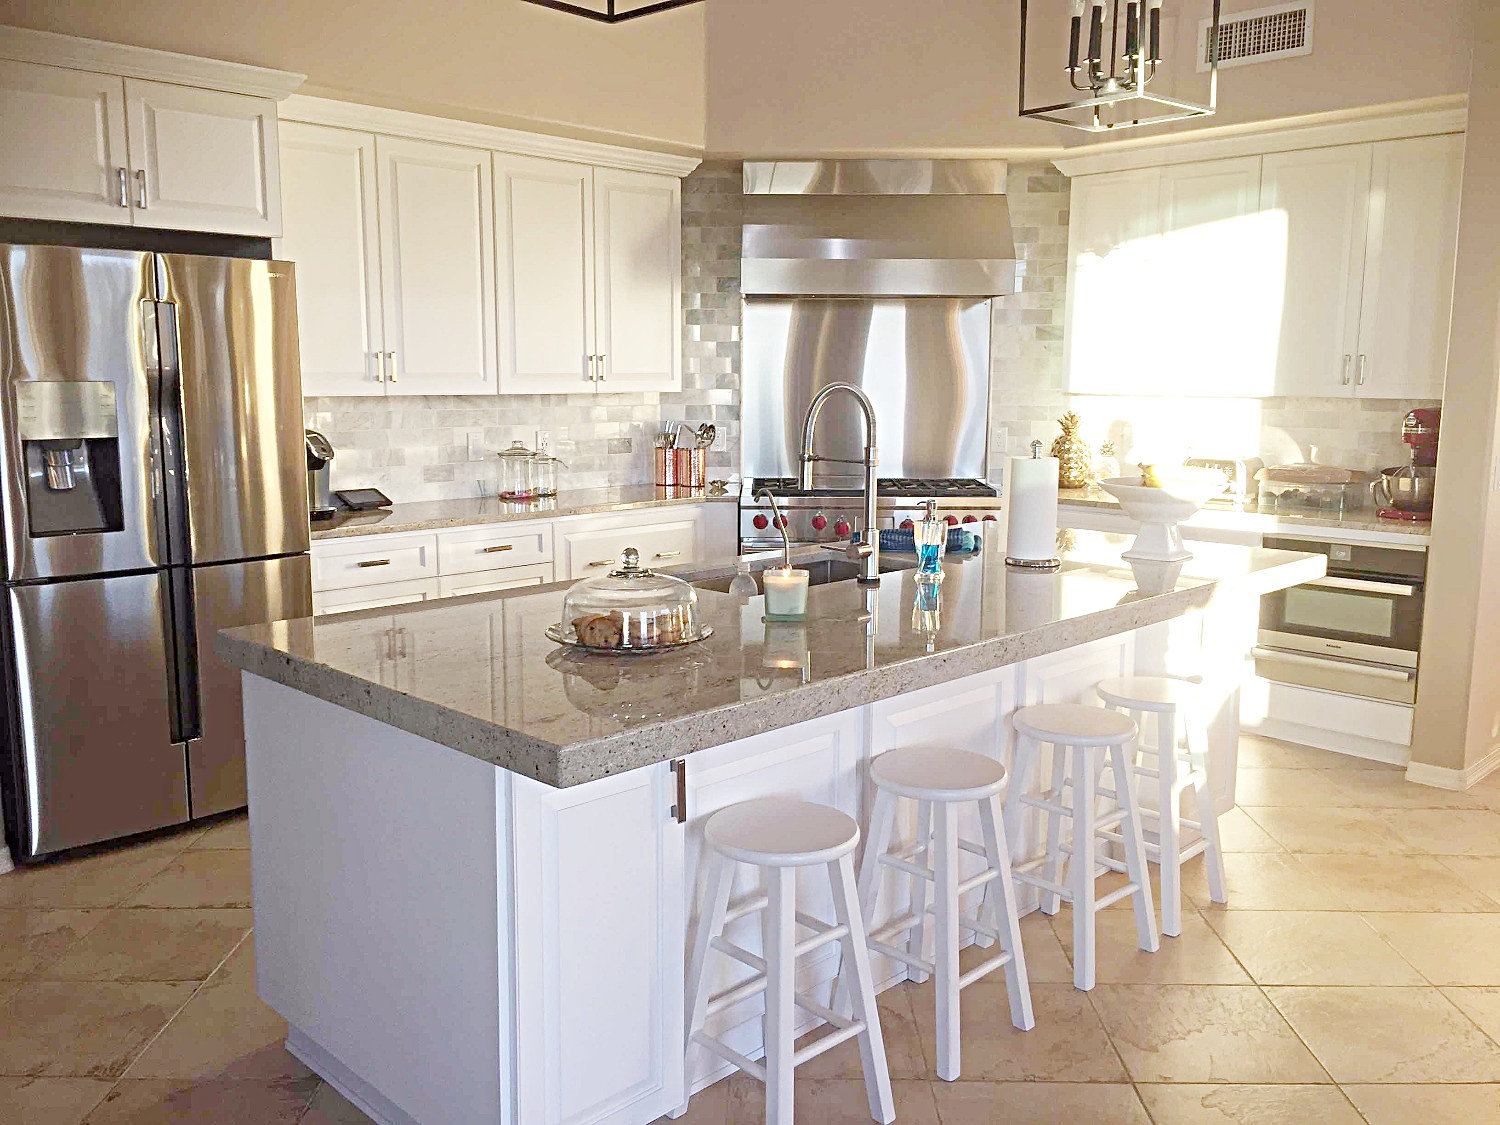 Kitchen Cabinets Tucson Az Furniture Creations Tucson Arizona Furniture Store Design